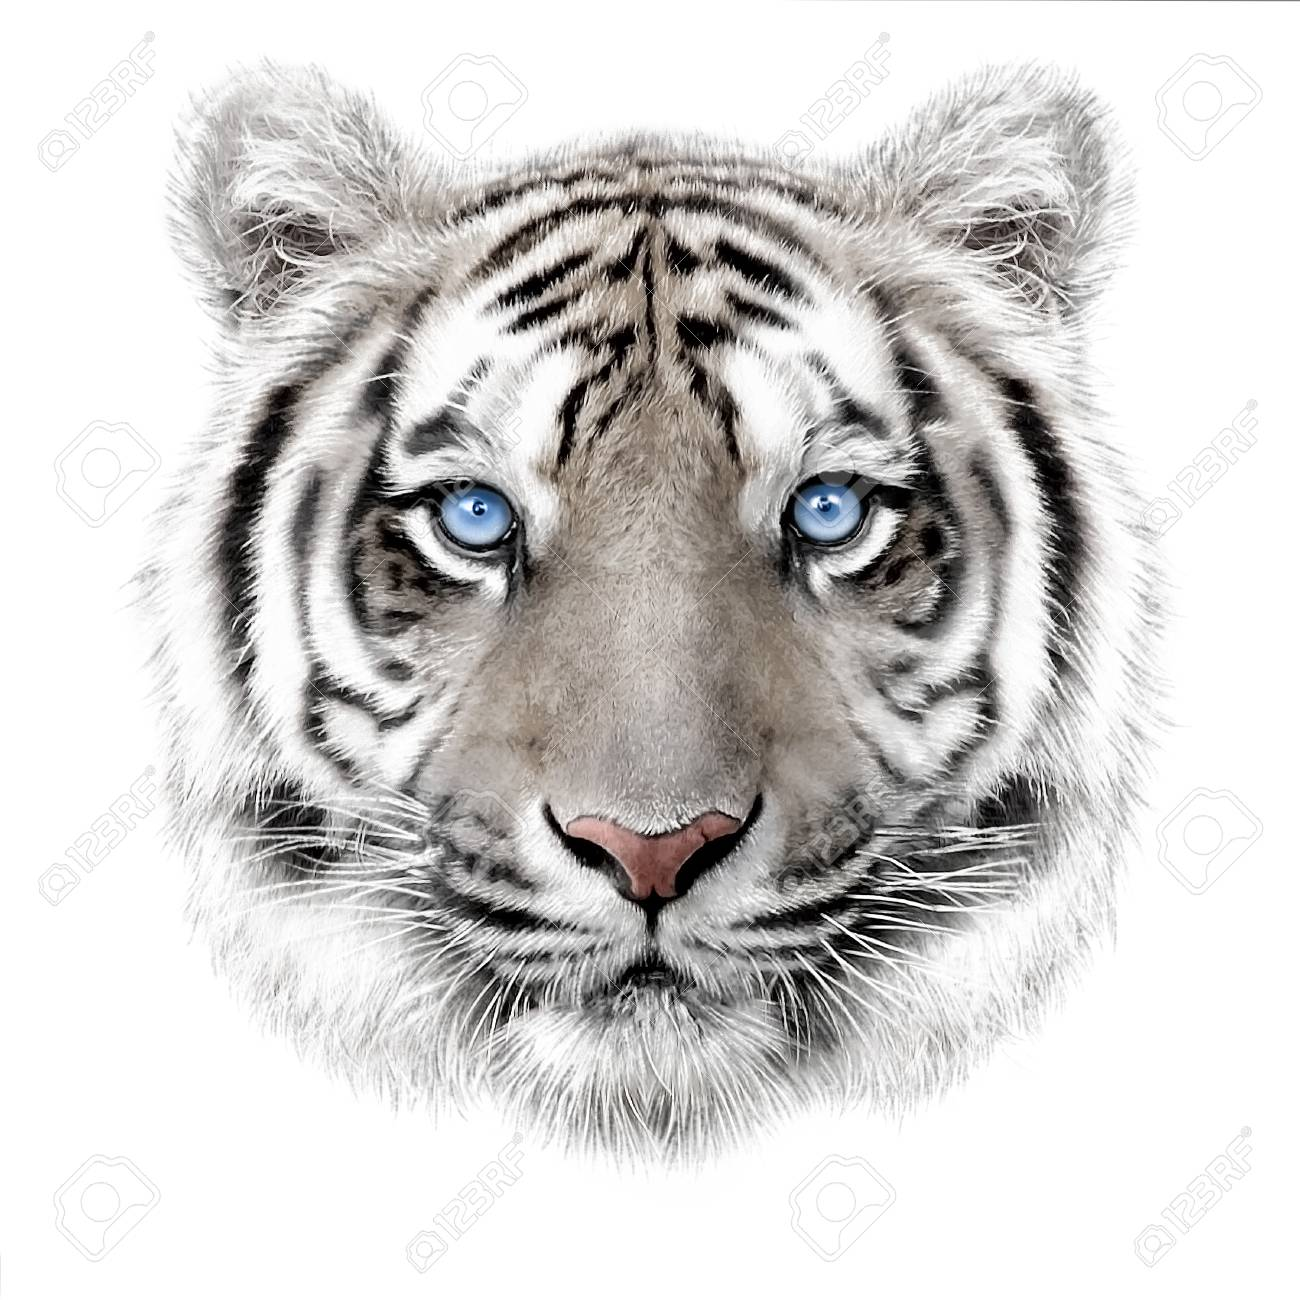 hand-drawing portrait of a white bengal tiger with blue eyes